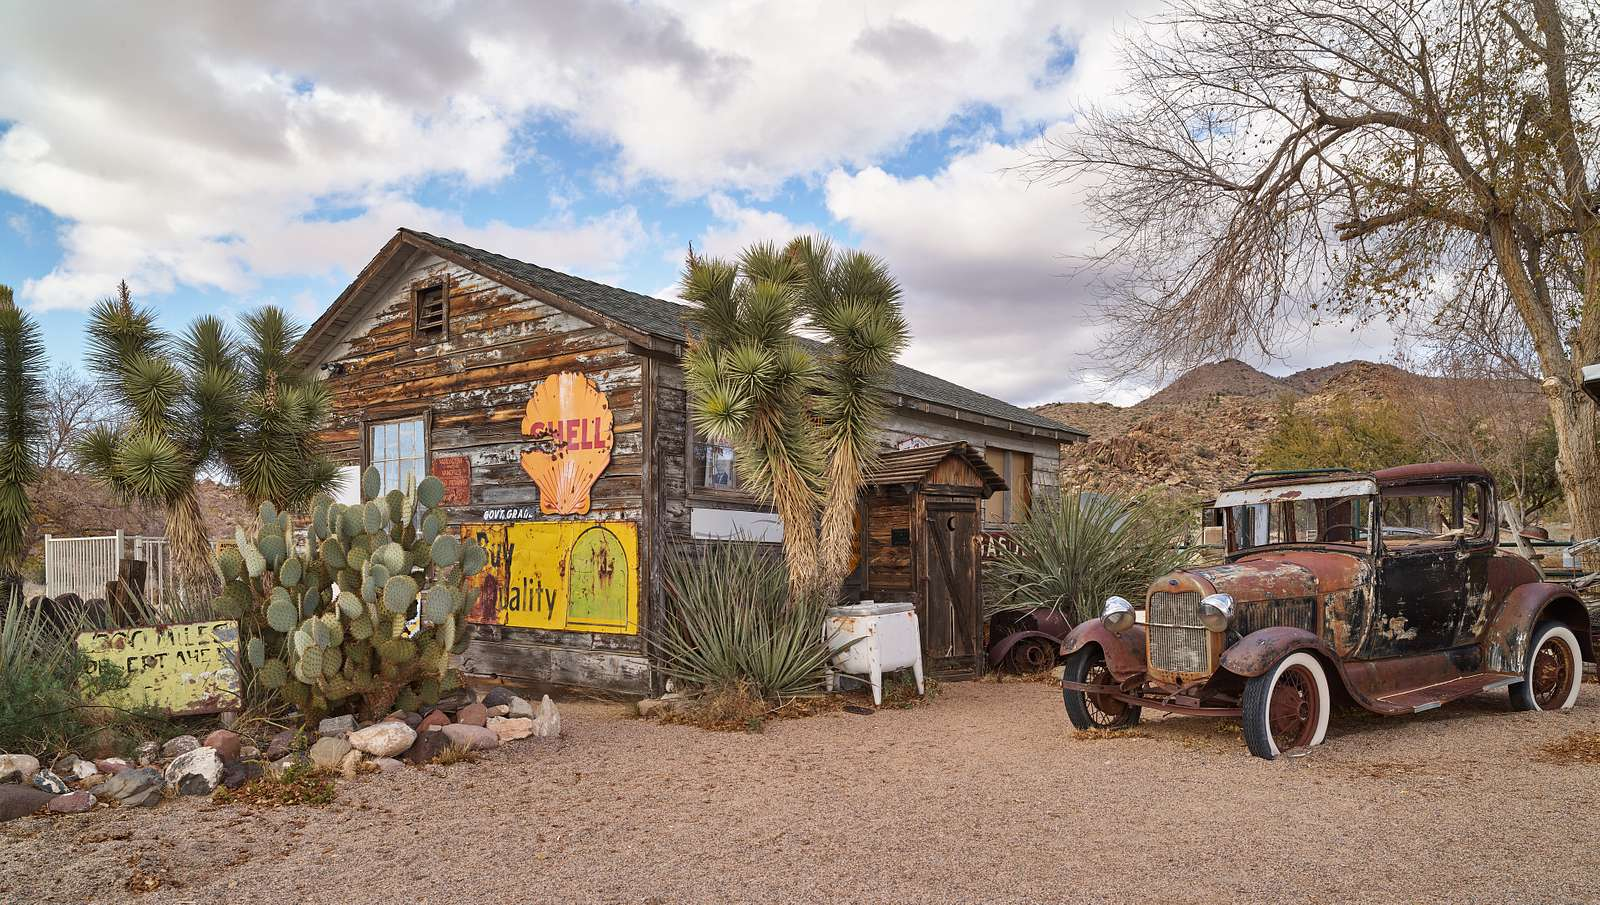 """An old, rusted car, or """"jalopy,"""" is actually a nostalgic roadside attraction at the venerable Hackberry General Store in the tiny settlement of Hackberry, Arizona """"a vestige of the heyday of two-lane cross-country travel in the 1930s and 40s along U.S. Highway 66"""